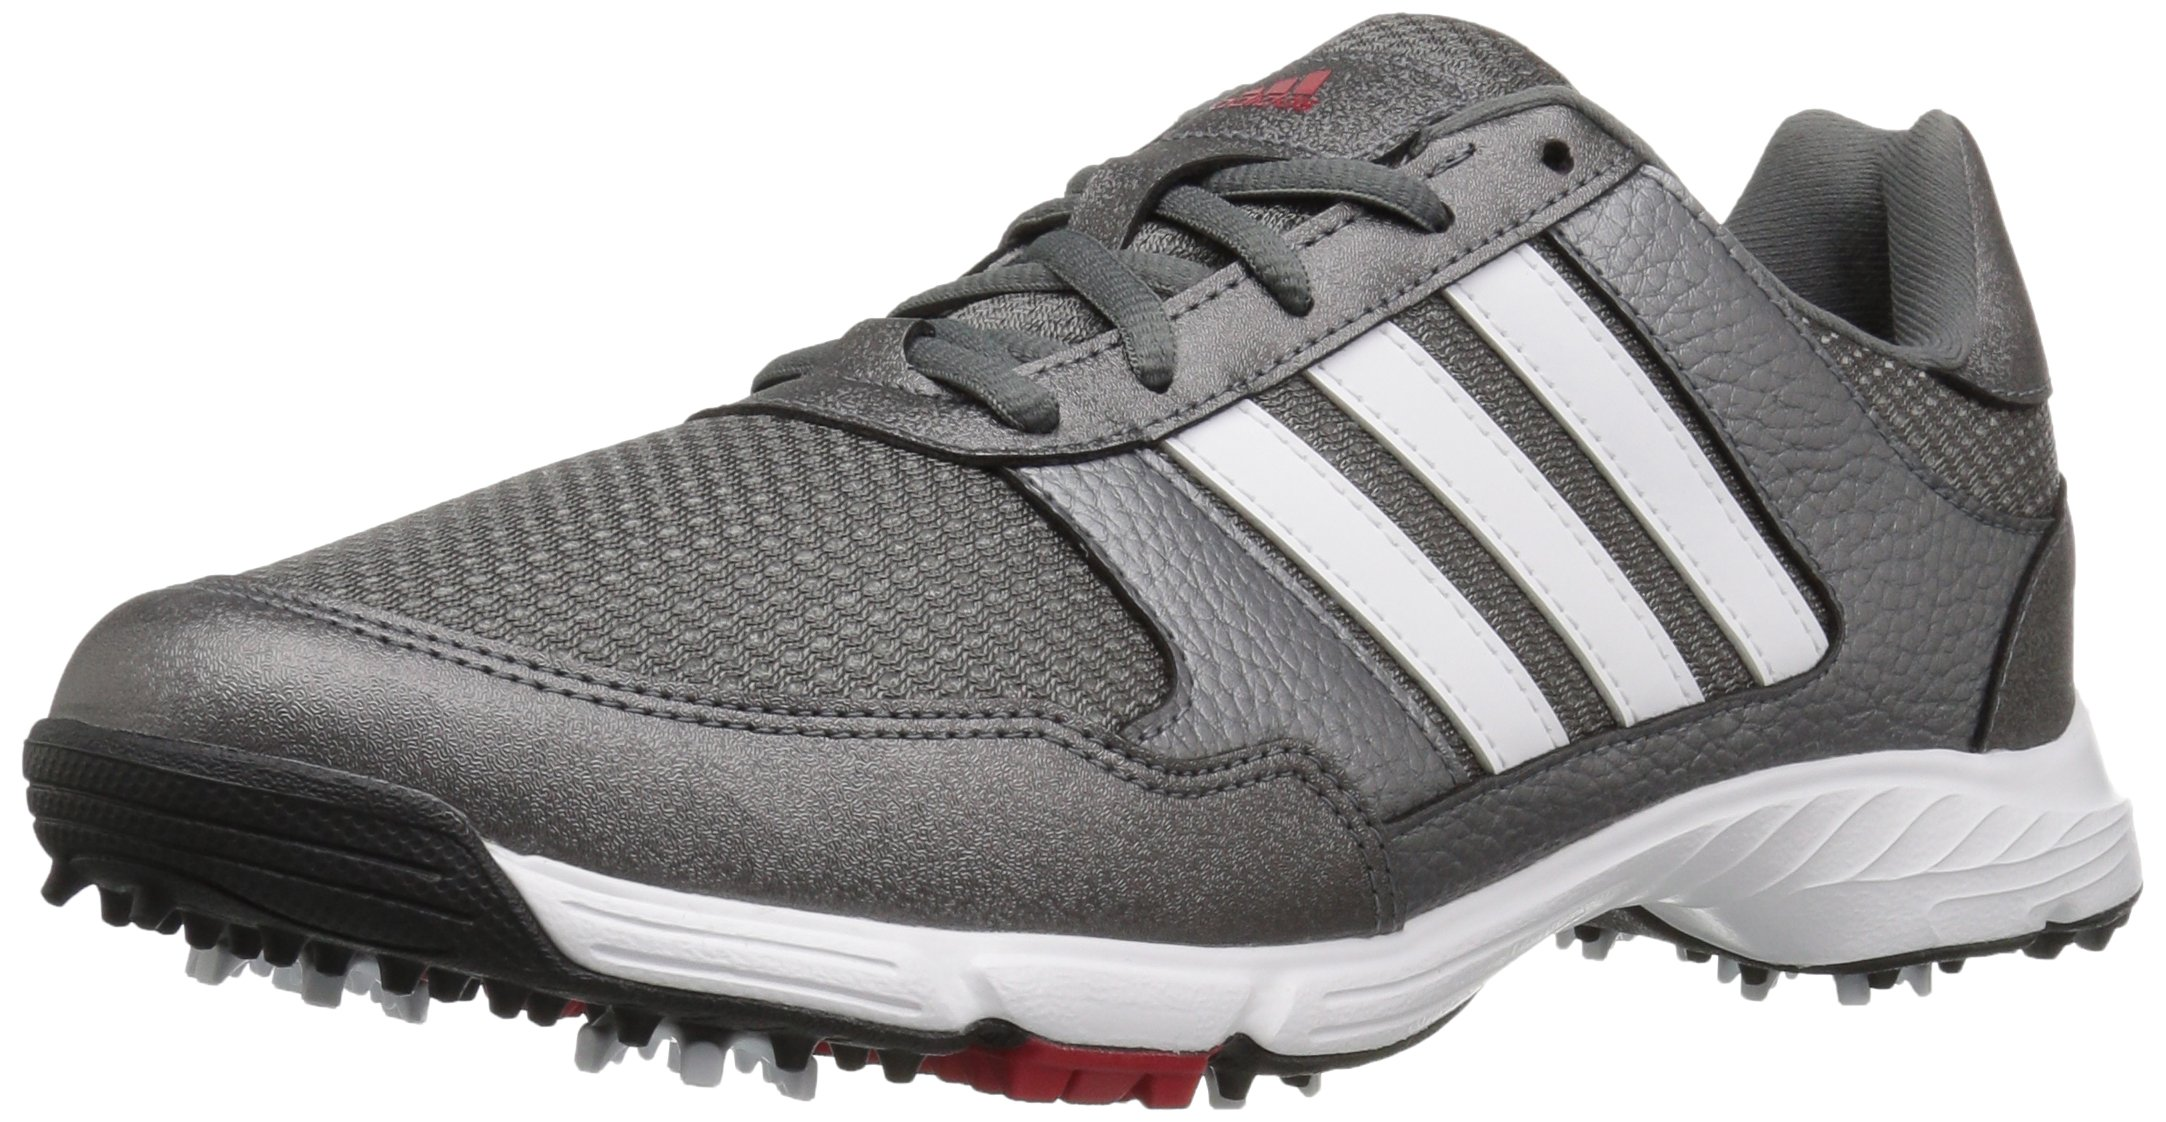 adidas Men's Tech Response Golf Shoe, Iron Metallic/White, 13 W US